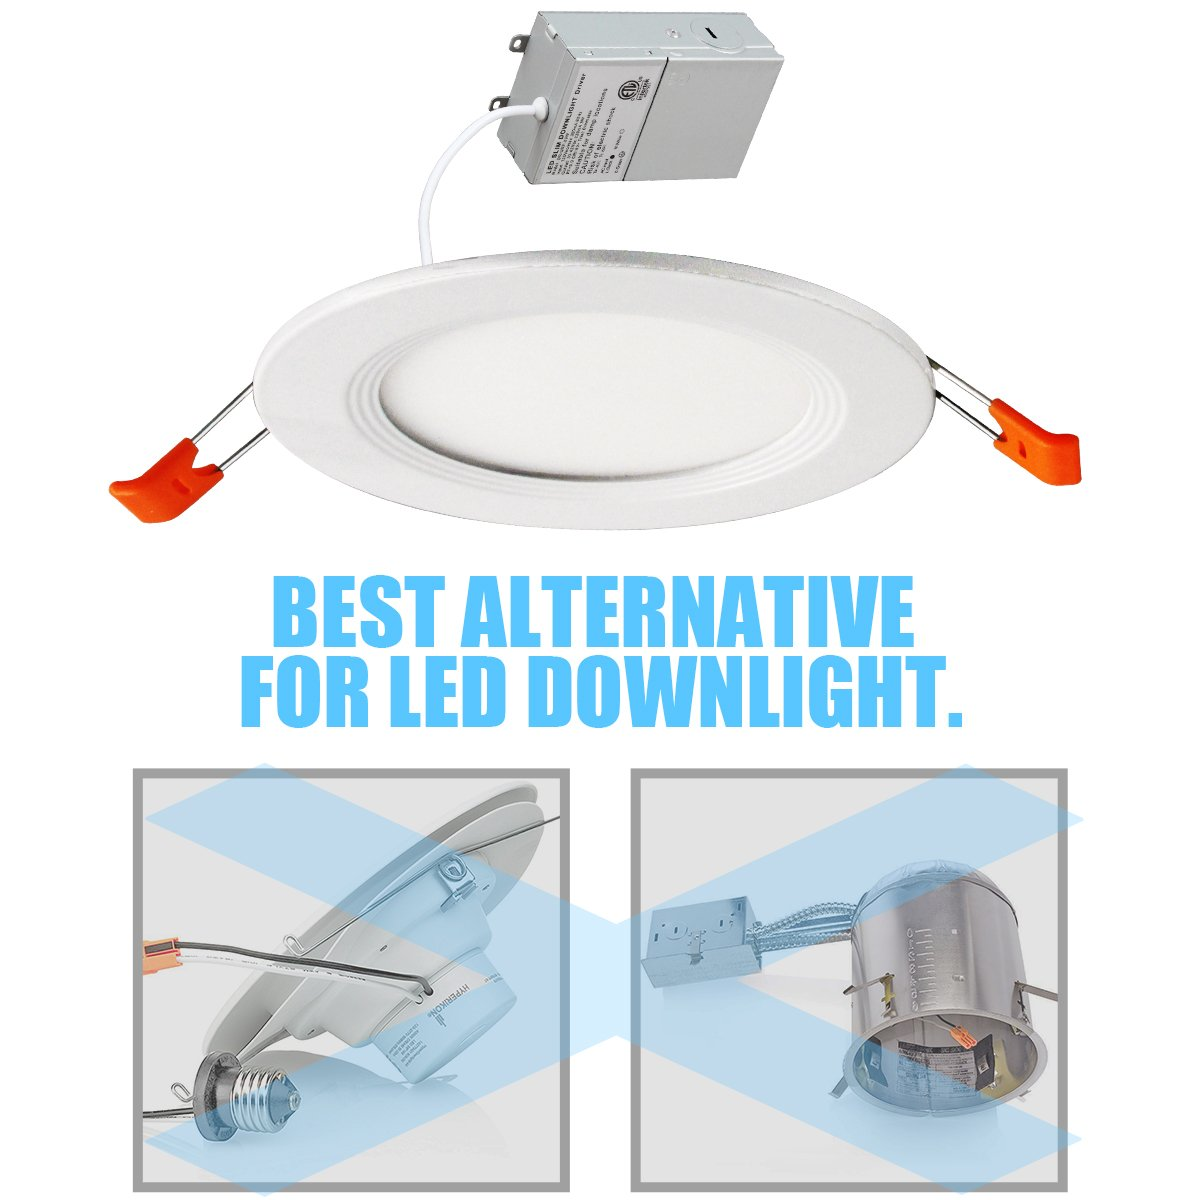 Thksgod 9w 4 Ultra Thin Recessed Ceiling Light With Junction Box Wiring Diagram Of Triac Dimming Led Downlight Connecting Over 1 Slim Dimmable 5000k Daylight Airtight 650lm65 80 W